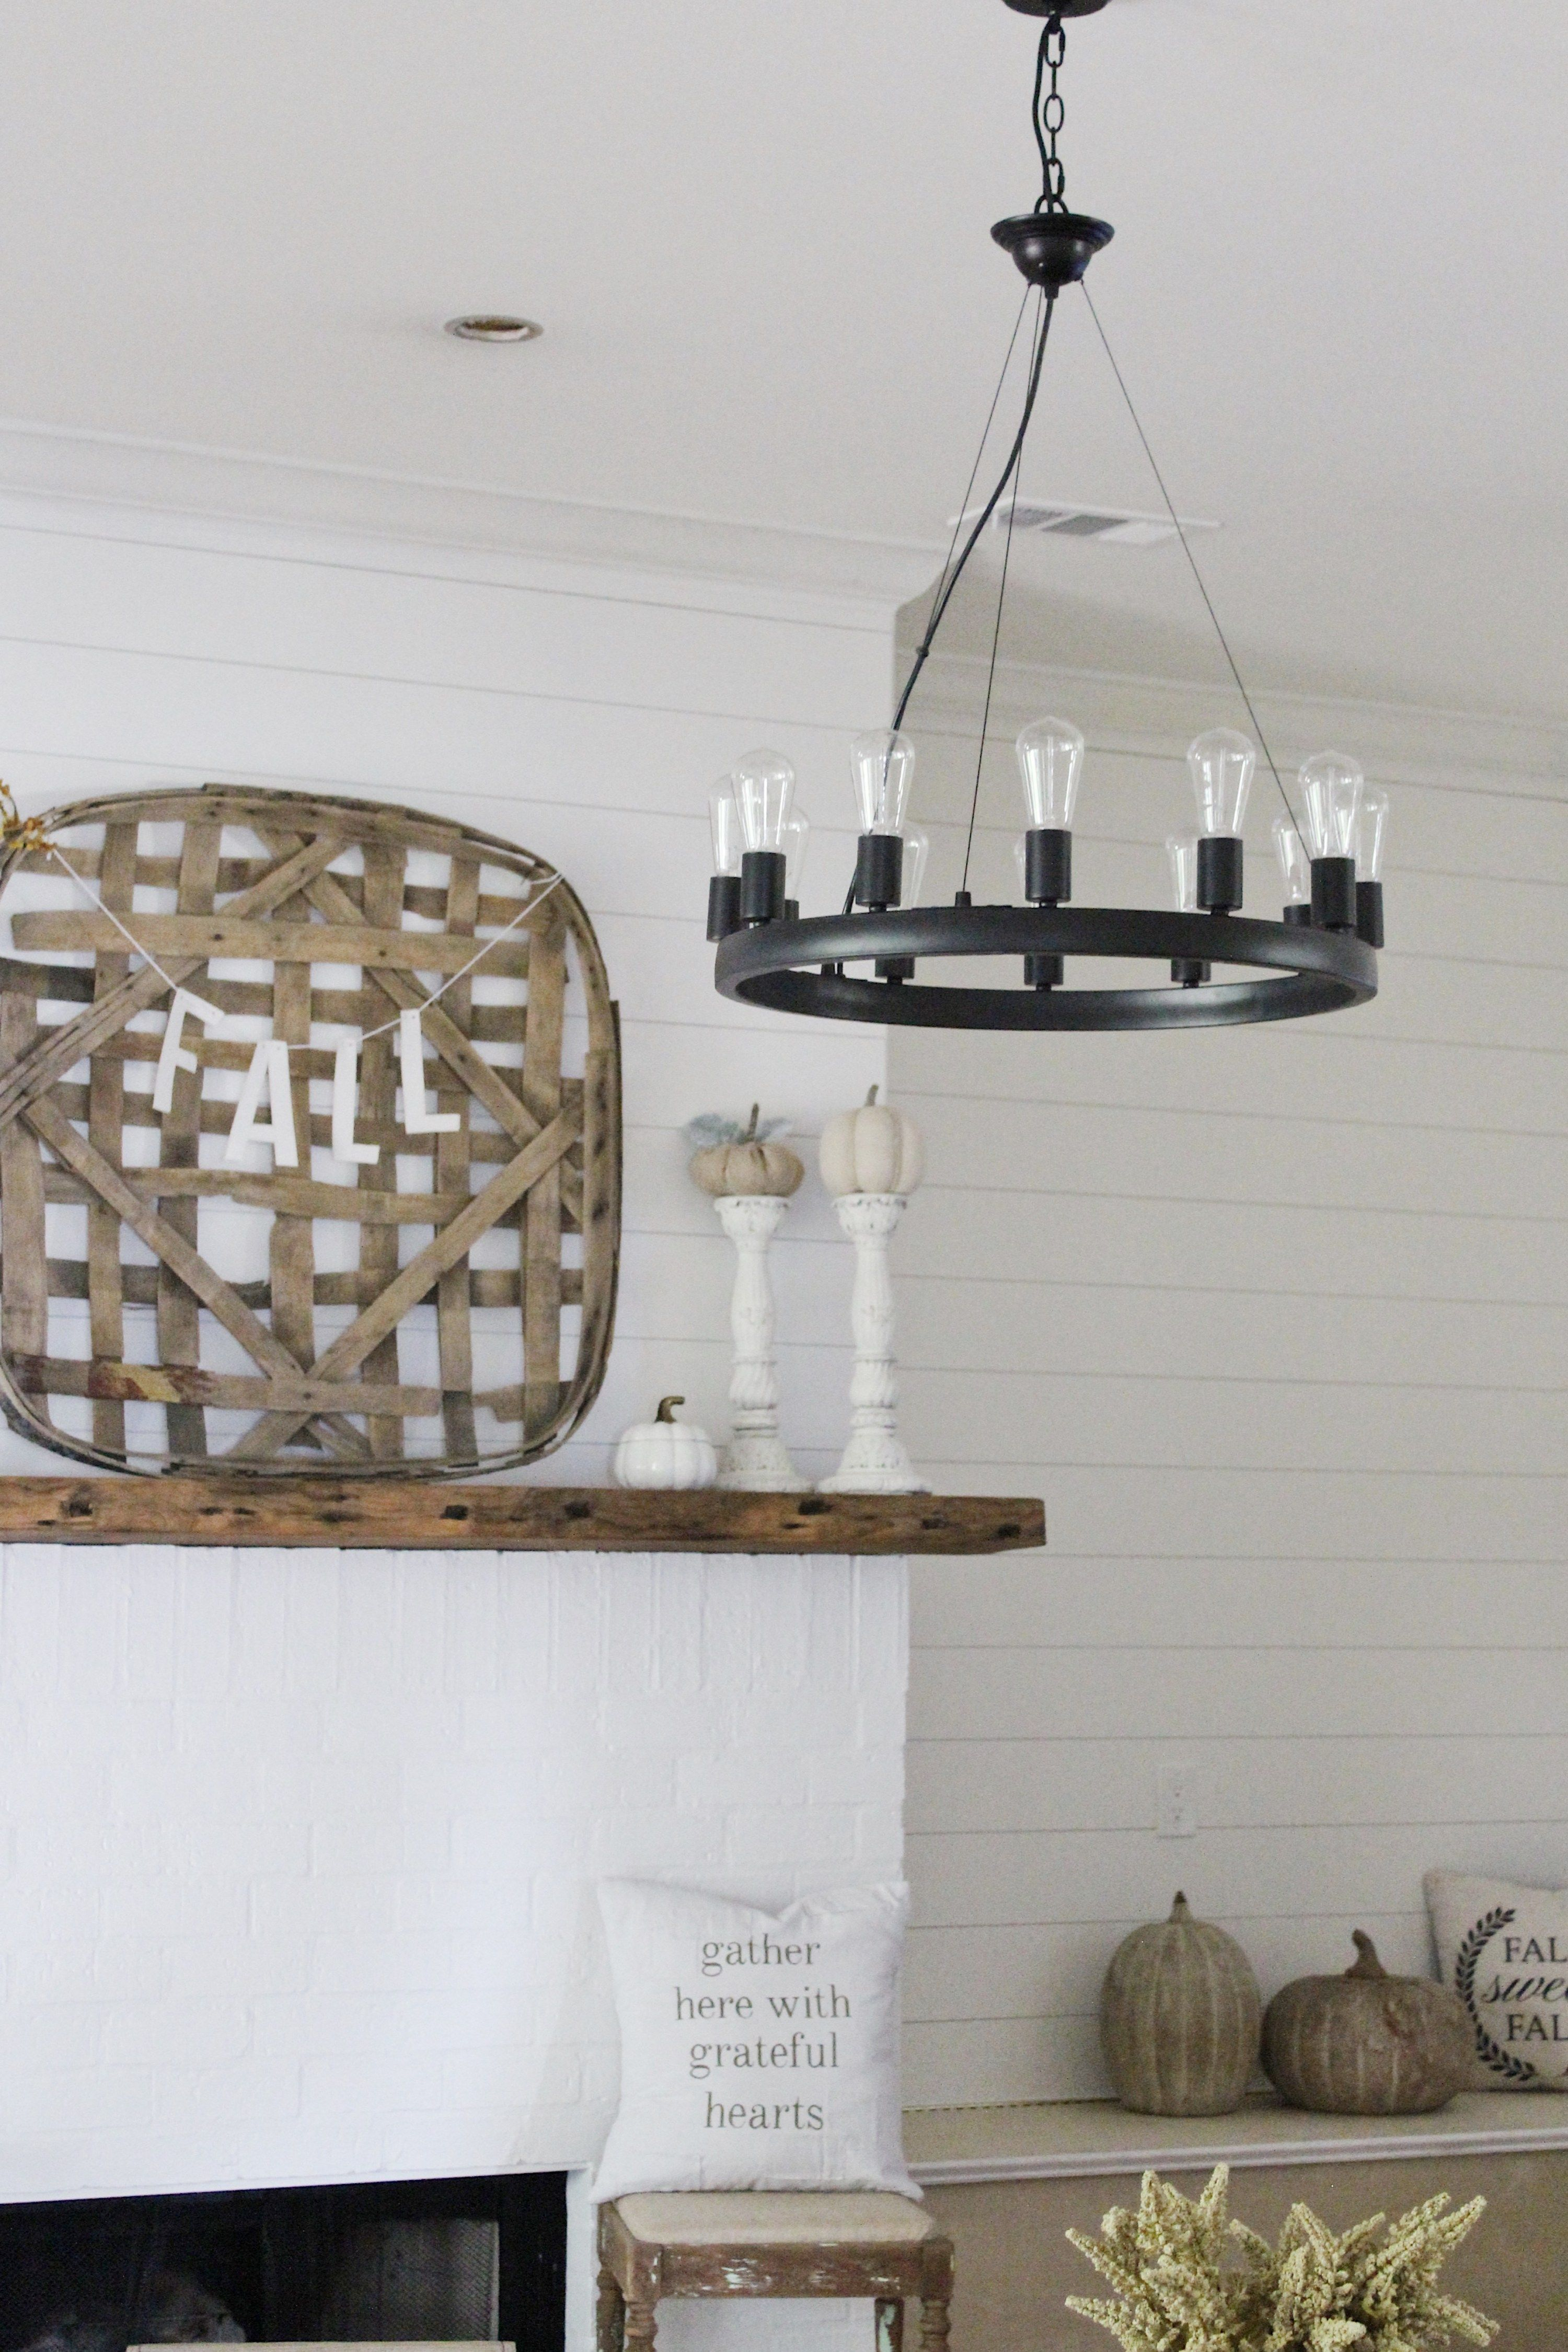 lighting cool lamp chandelier of elegance home peonies handmade farmhouse astonishing the hanging wood strip ig fixture full ideas lightning from bulb small size kit diy black rustic kitchen for bathroom homemade island pendant cover design lights ceiling light fixtures